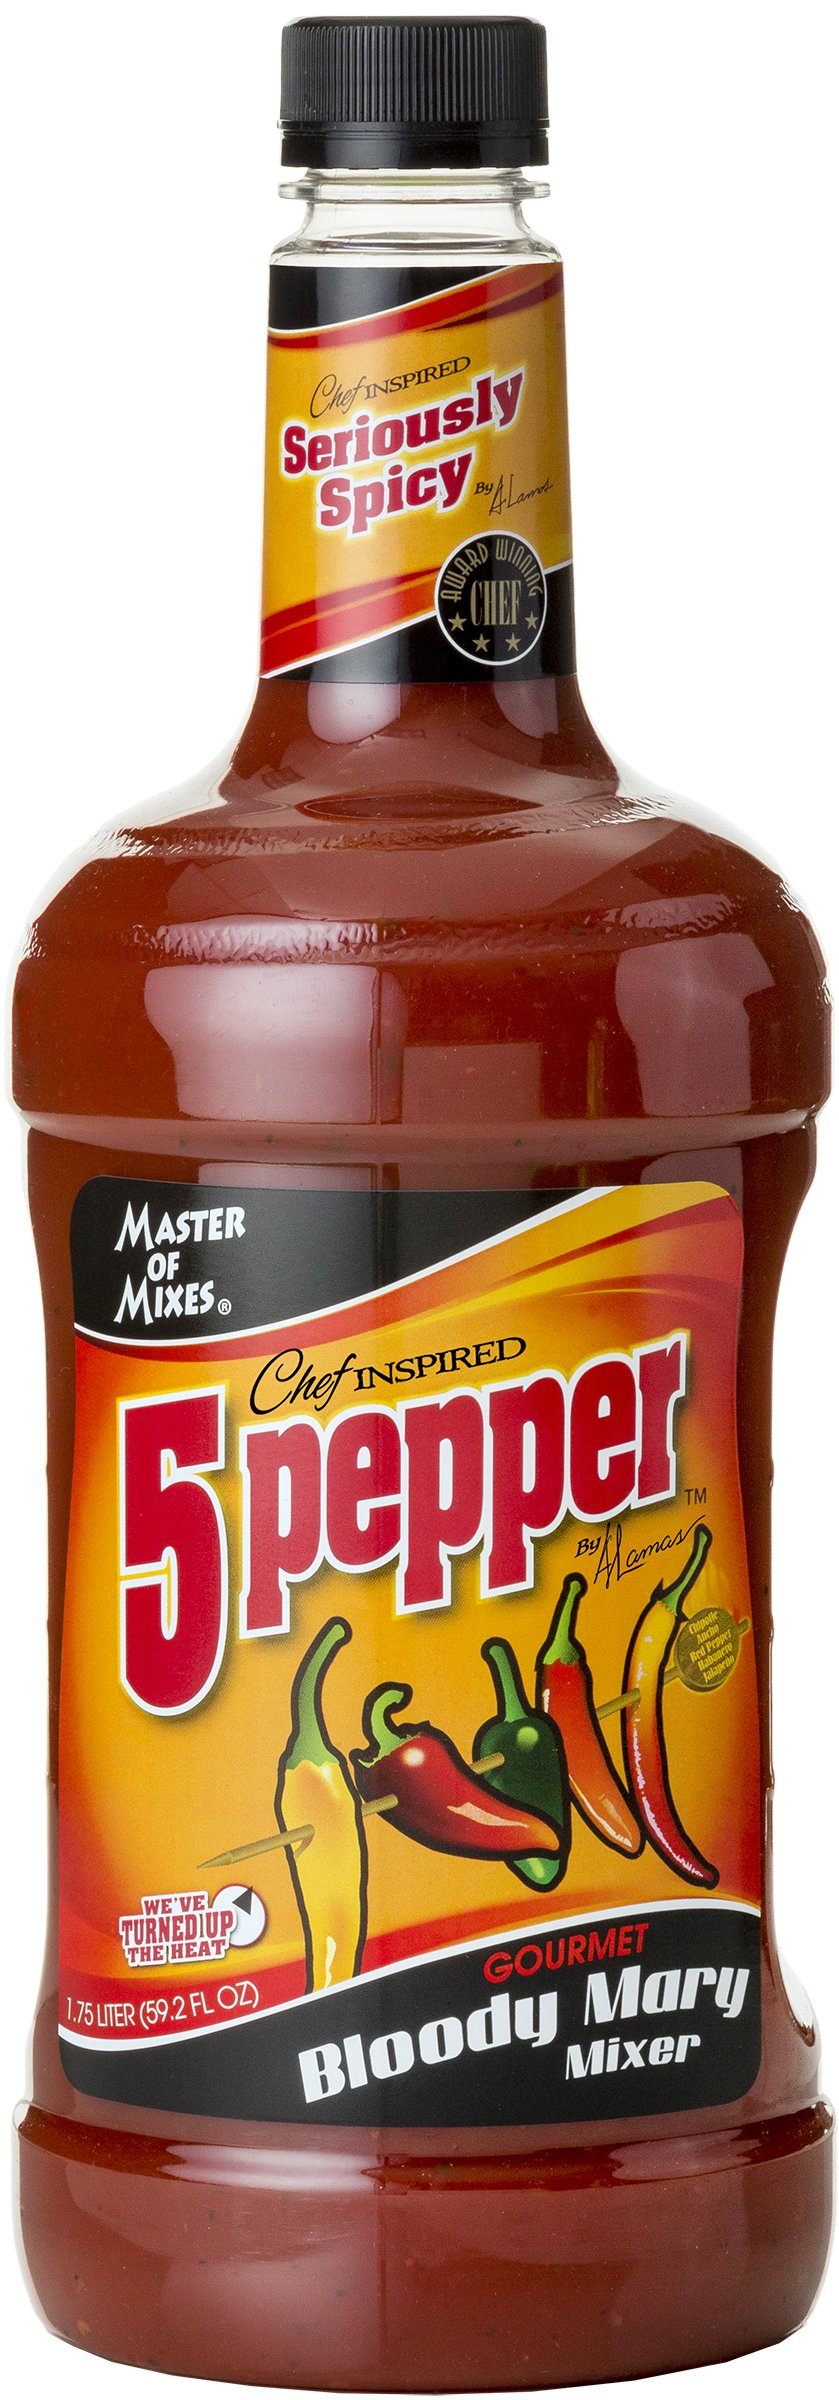 Master of Mixes 5 Pepper Extra Spicy Bloody Mary Drink Mix, Ready To Use, 1.75 Liter Bottle (59.2 Fl Oz), Pack of 3 by Master of Mixes (Image #2)